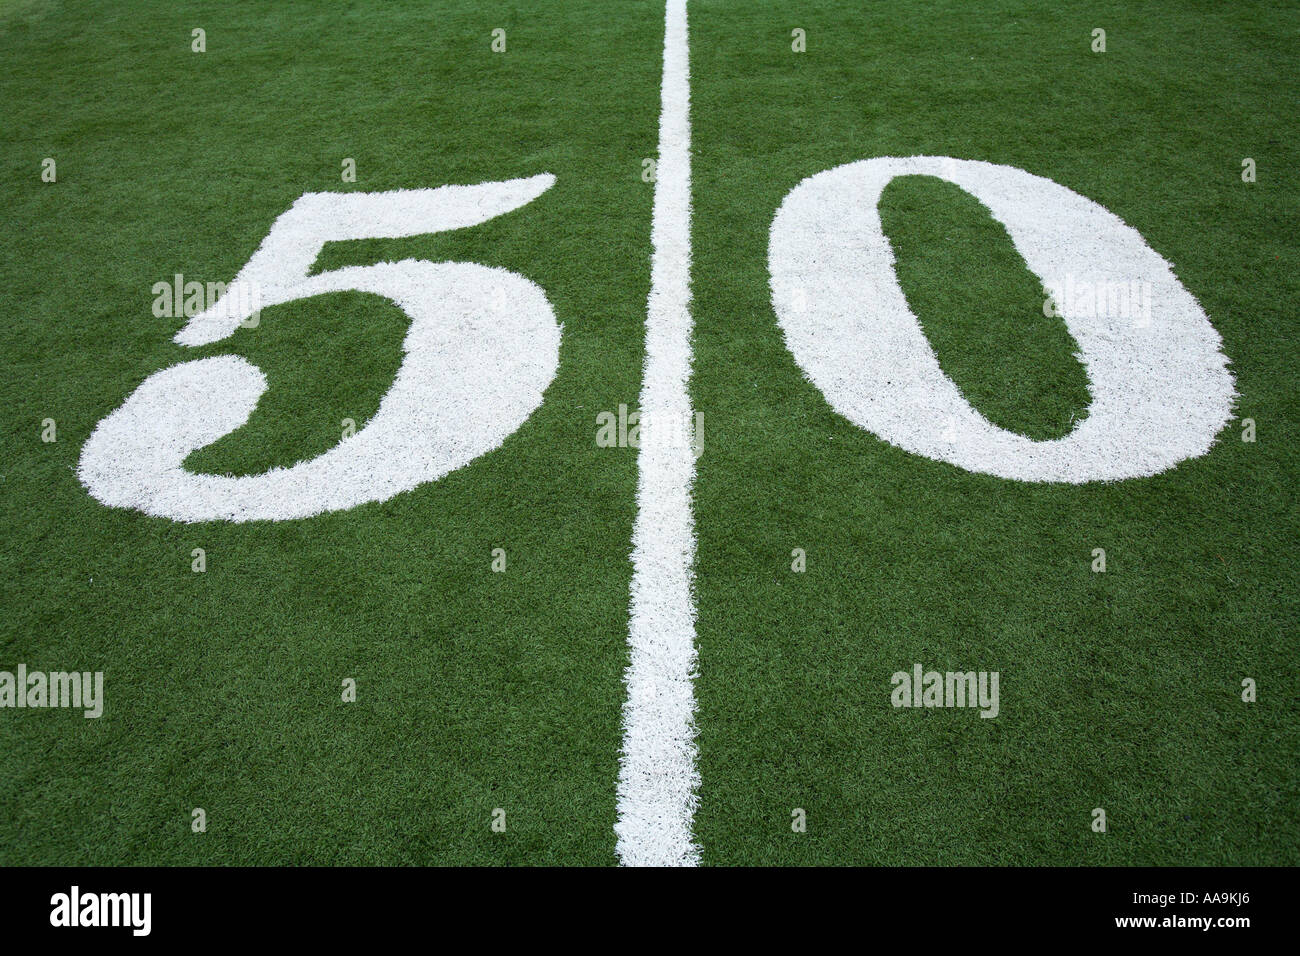 50 yard line on football field - Stock Image